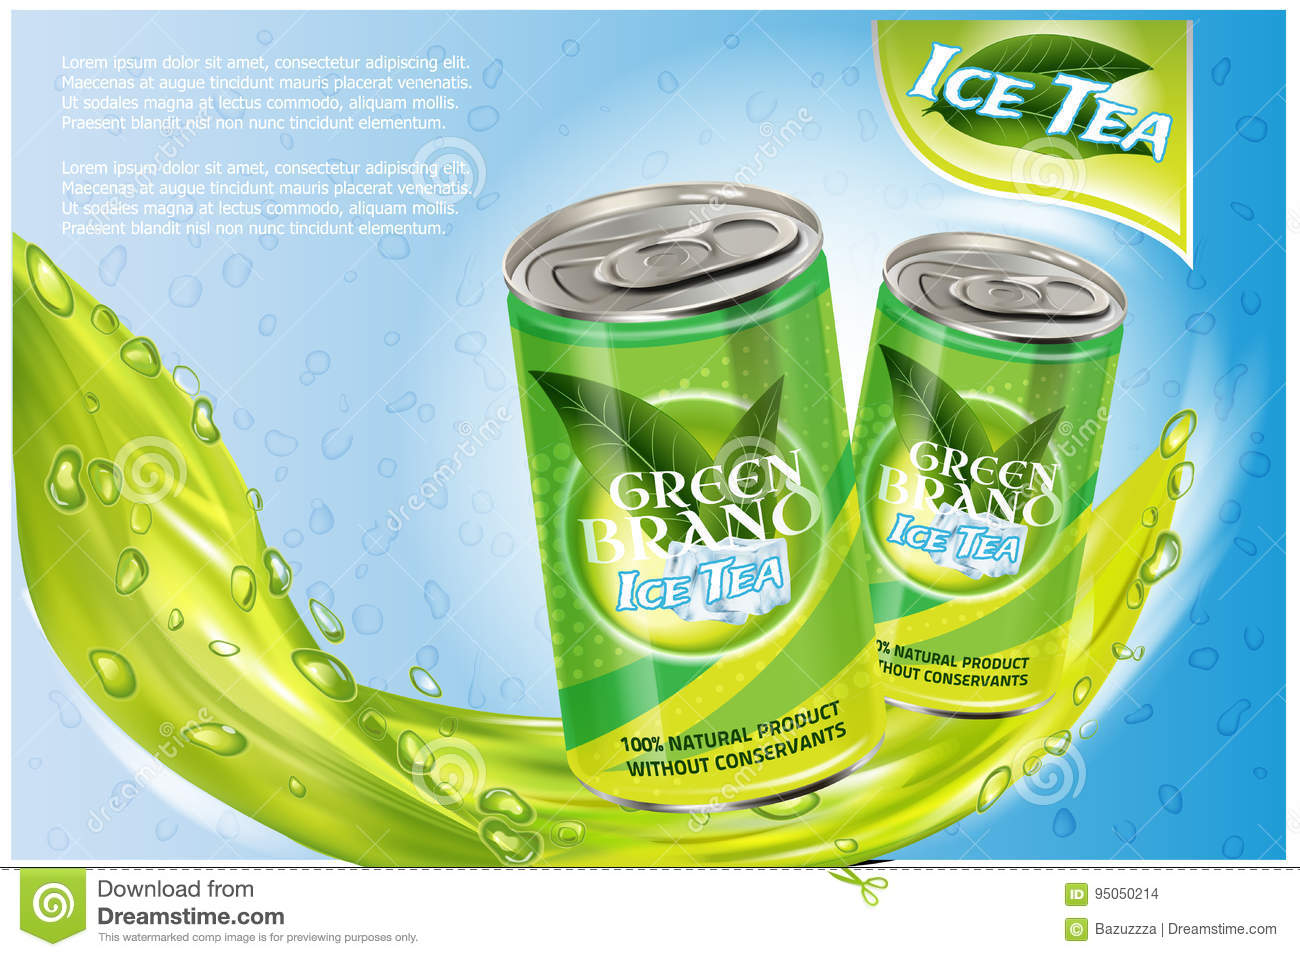 download ice tea products ad vector 3d illustration soft drink aluminium can template design